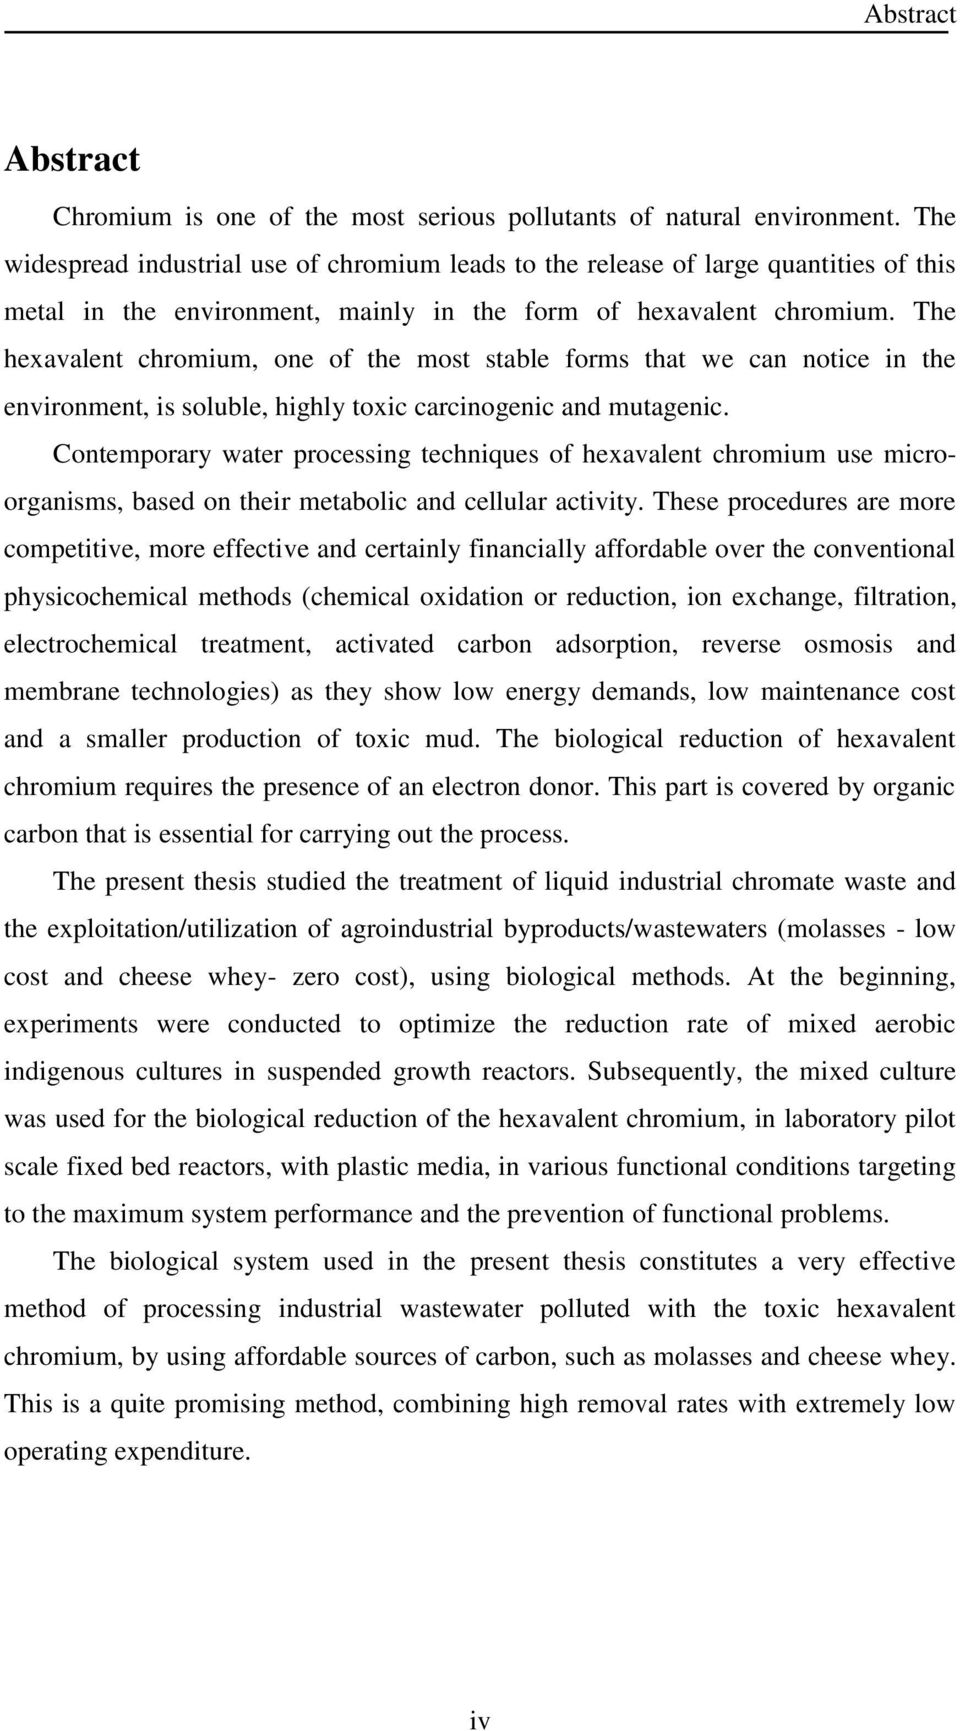 chromium removal thesis Removal of heavy metal from industrial wastewater using chitosan coated oil palm shell charcoal saifuddin m nomanbhay chemistry unit, department of engineering sciences  oxidation states of chromium persist in the environment, cr (iii) and cr (vi), which have contrasting toxicities, mobilities and bioavailabilities whereas cr (iii) is.